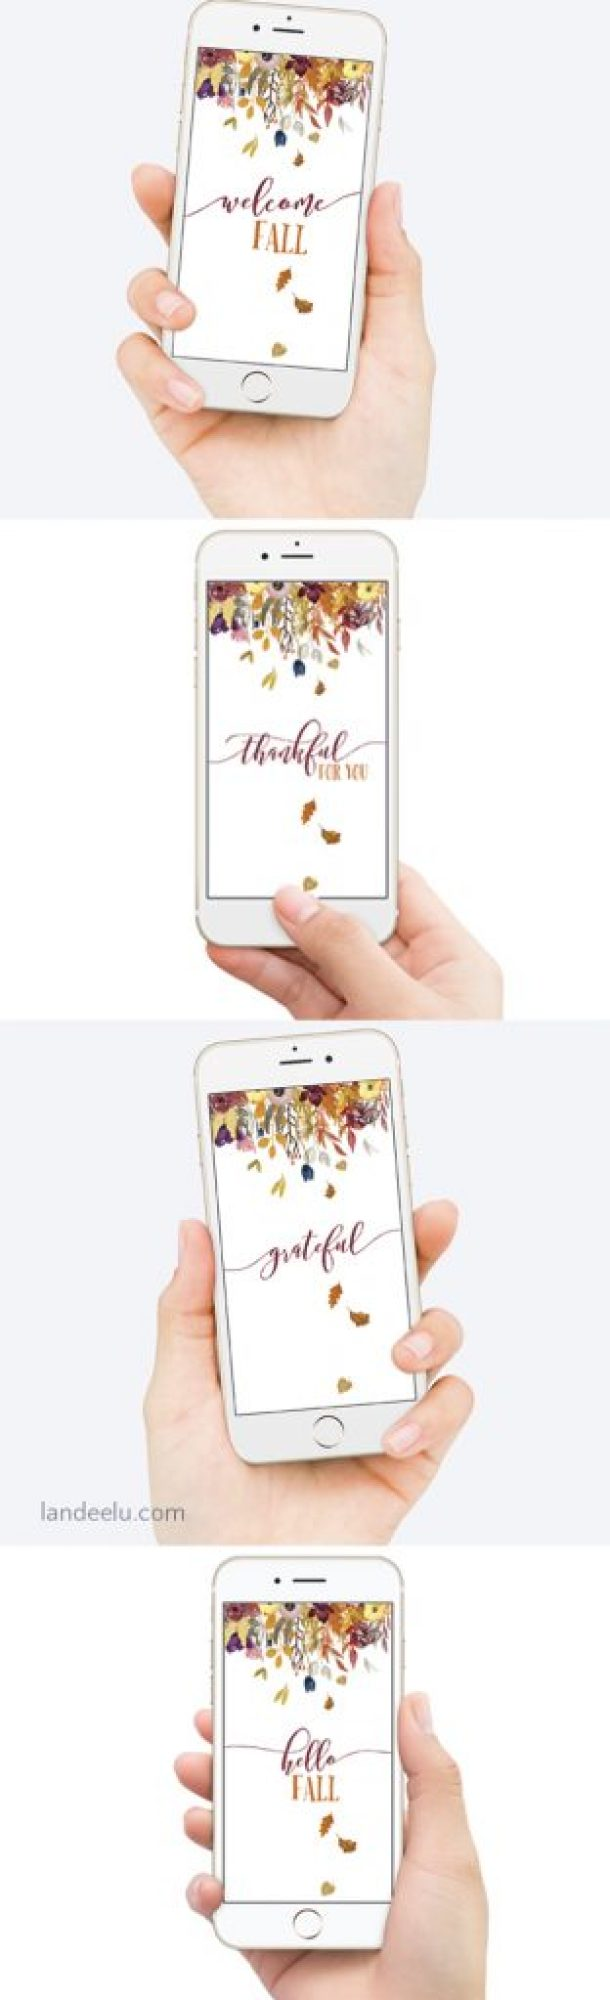 Gorgeous fall iphone wallpaper collection... perfect for this beautiful season!